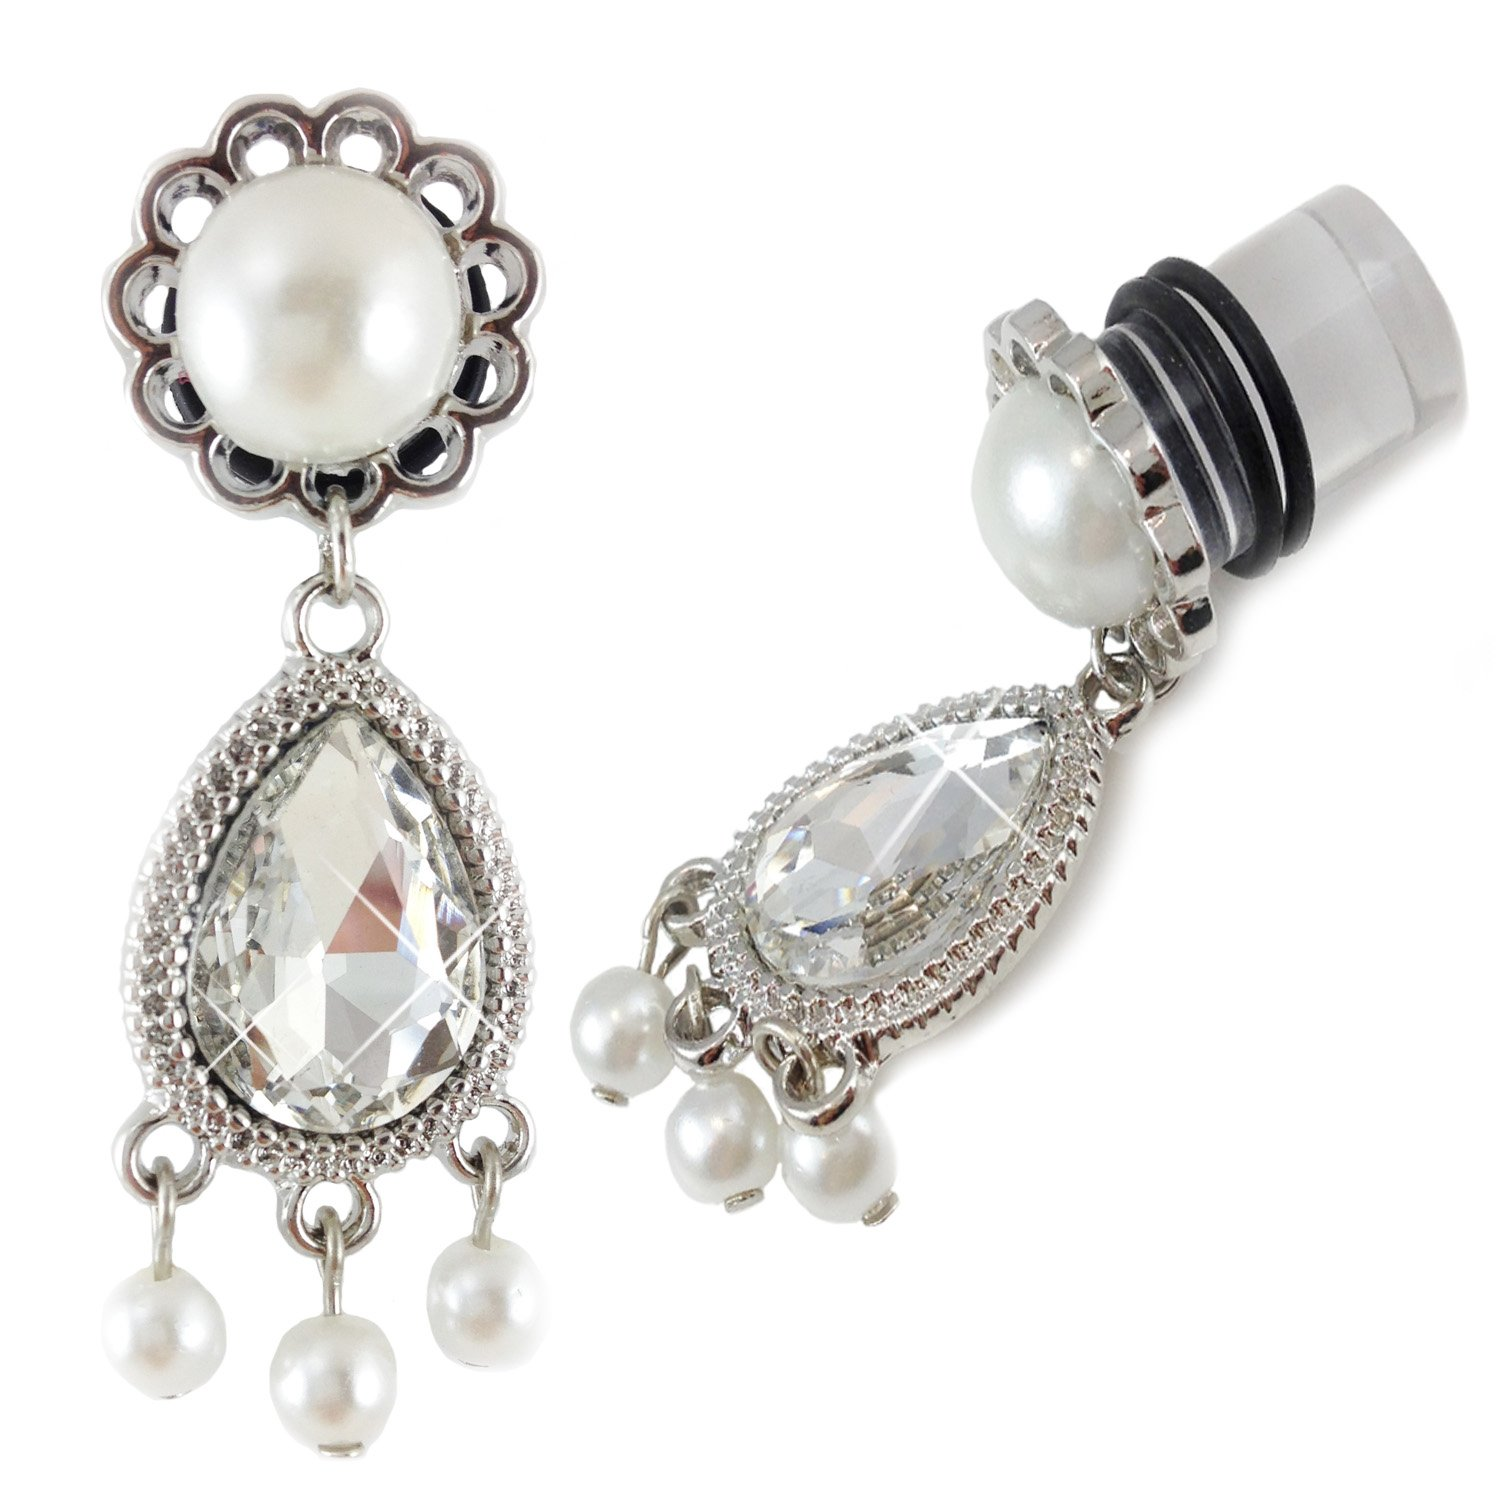 00G Pair of Stainless Steel CZ Dangle Ear Plugs Sparkles Brillantly Gauge Gear® CZ_DNGL_PRL